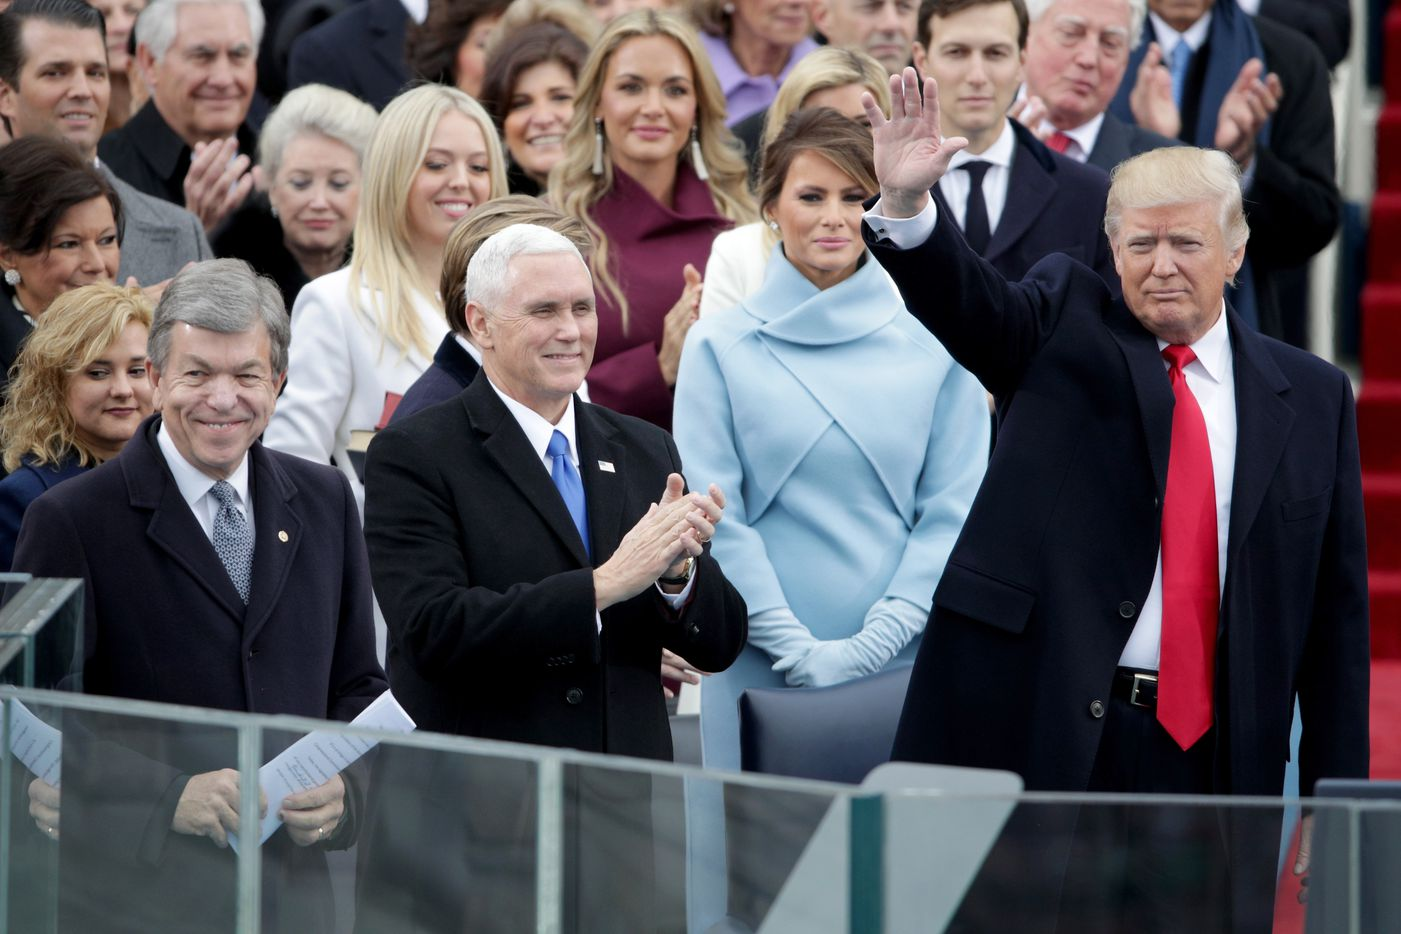 WASHINGTON, DC - JANUARY 20: President Elect Donald Trump waves to spectators as Vice President Elect Mike Pence and Melania Trump look on at the West Front of the U.S. Capitol on January 20, 2017 in Washington, DC. In today's inauguration ceremony Donald J. Trump becomes the 45th president of the United States.